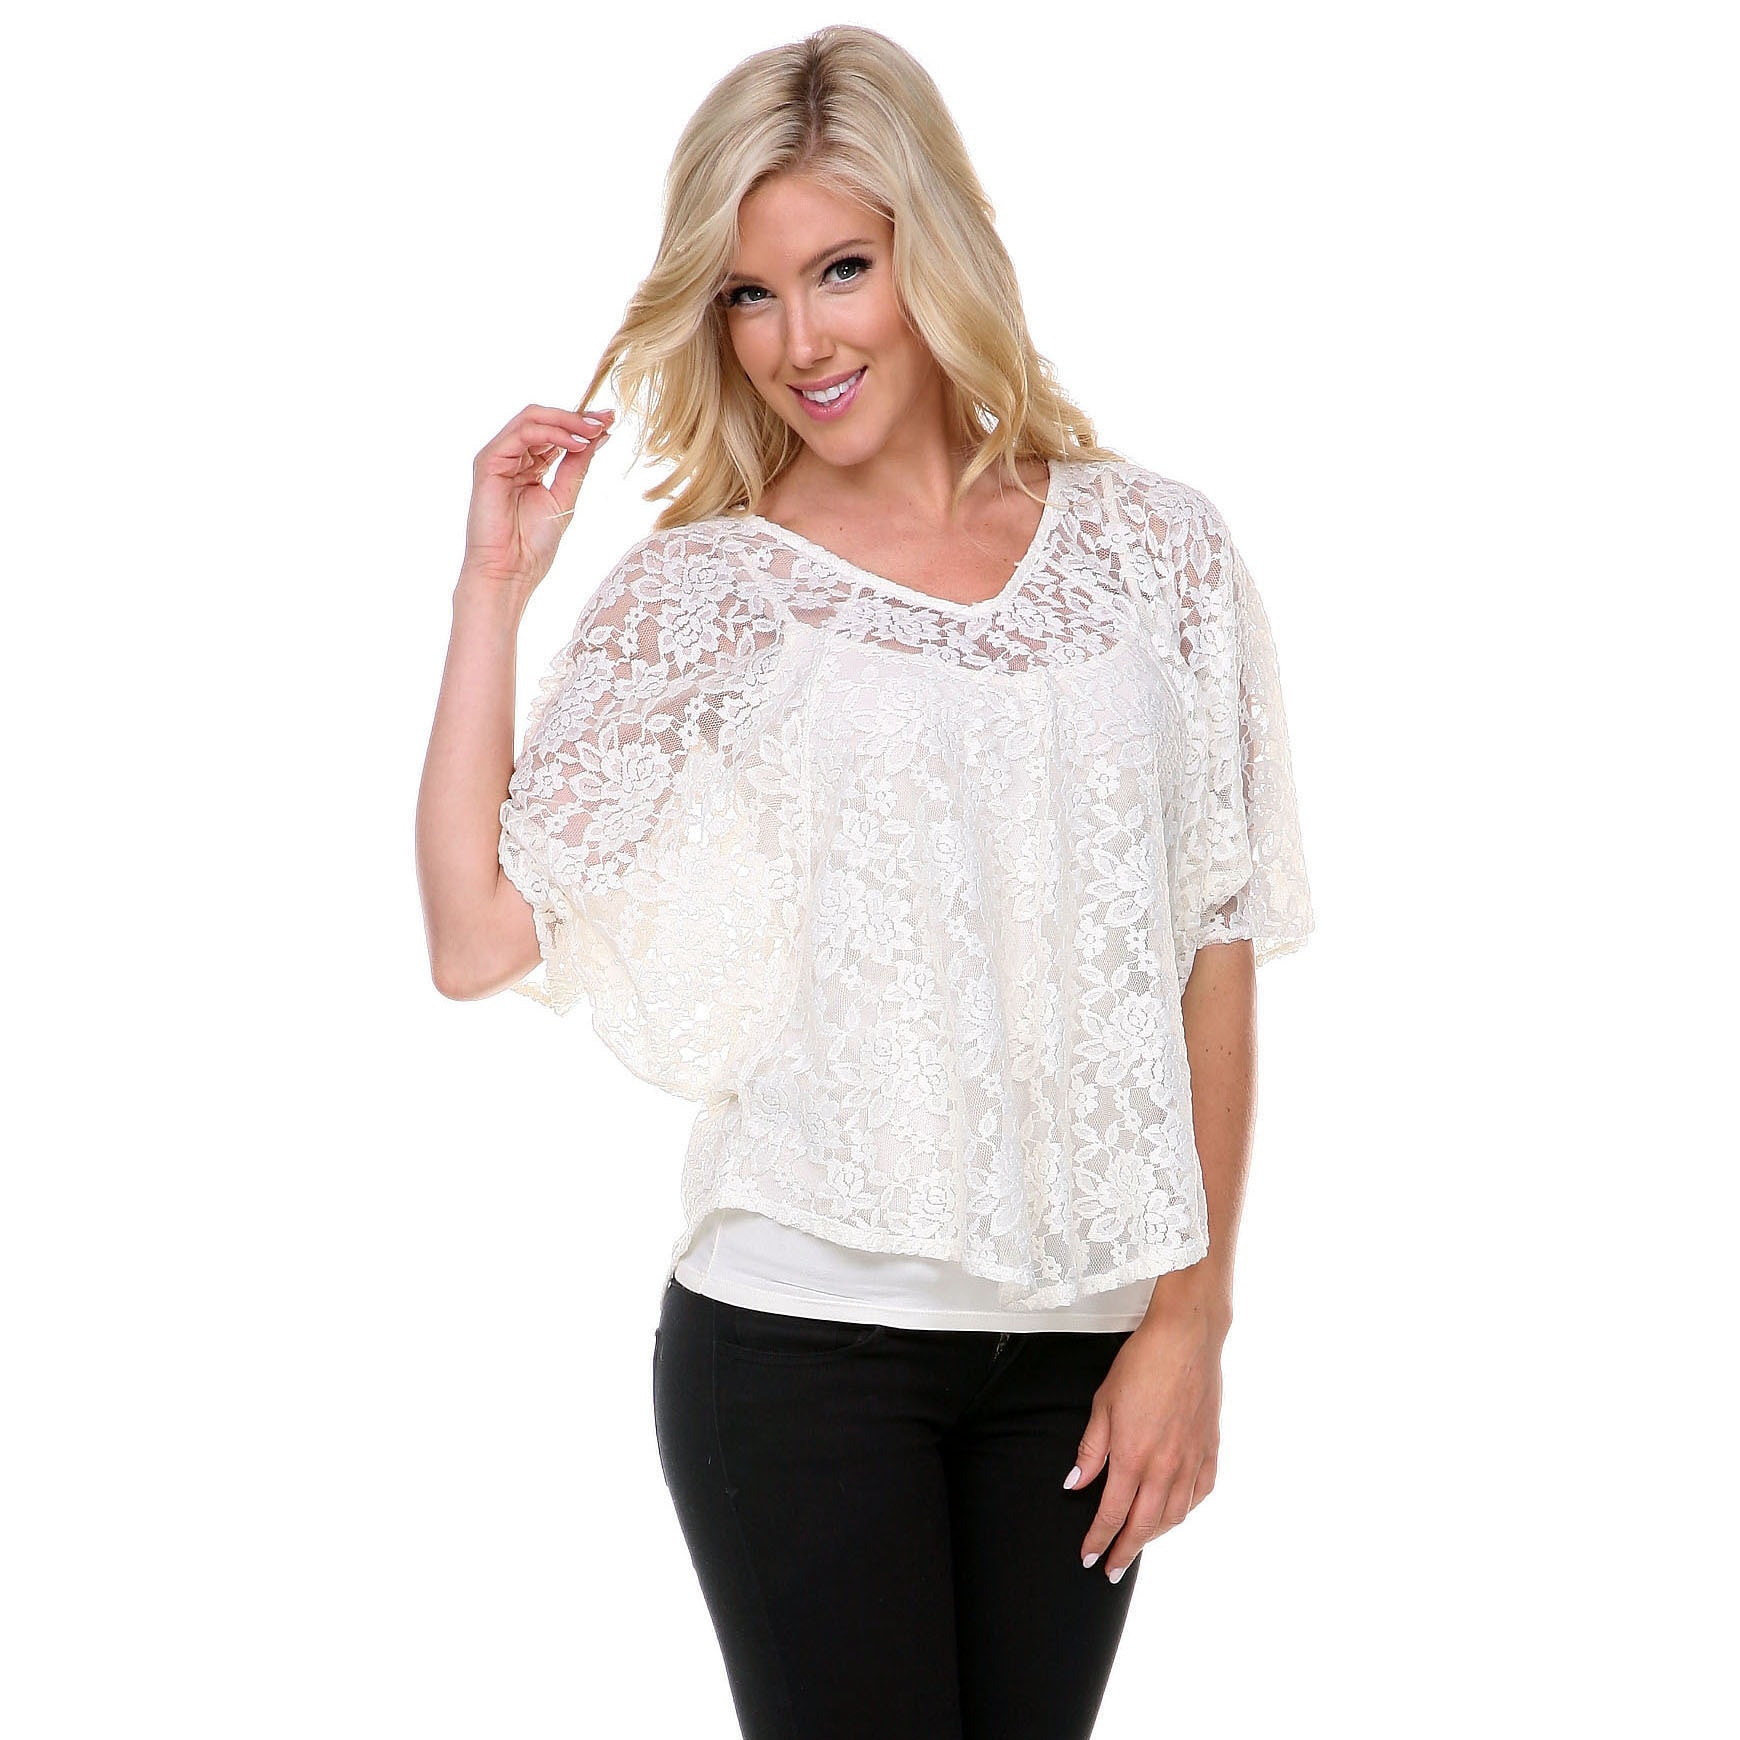 86f47d8d40a Shop Stanzino Women s Lace 3 4 Sleeve Blouse - Free Shipping On Orders Over   45 - Overstock - 10160579